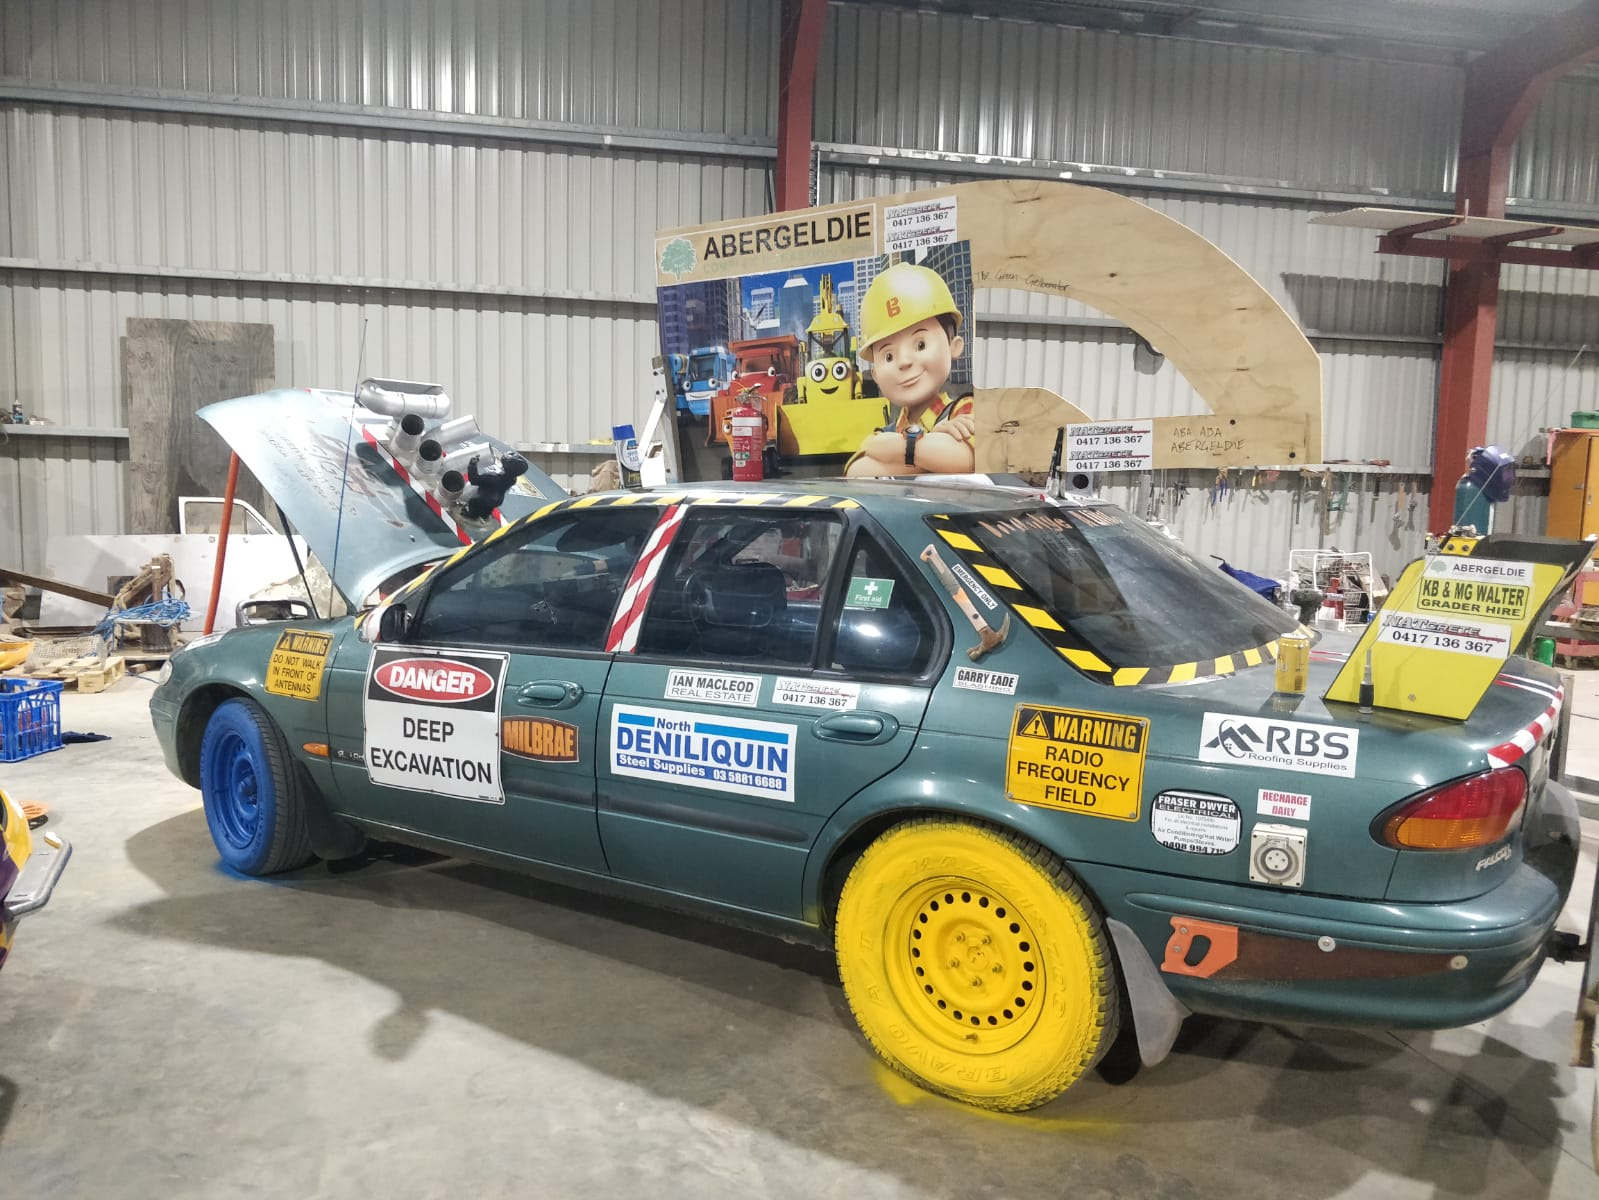 Abergeldie Rally Car all decorated